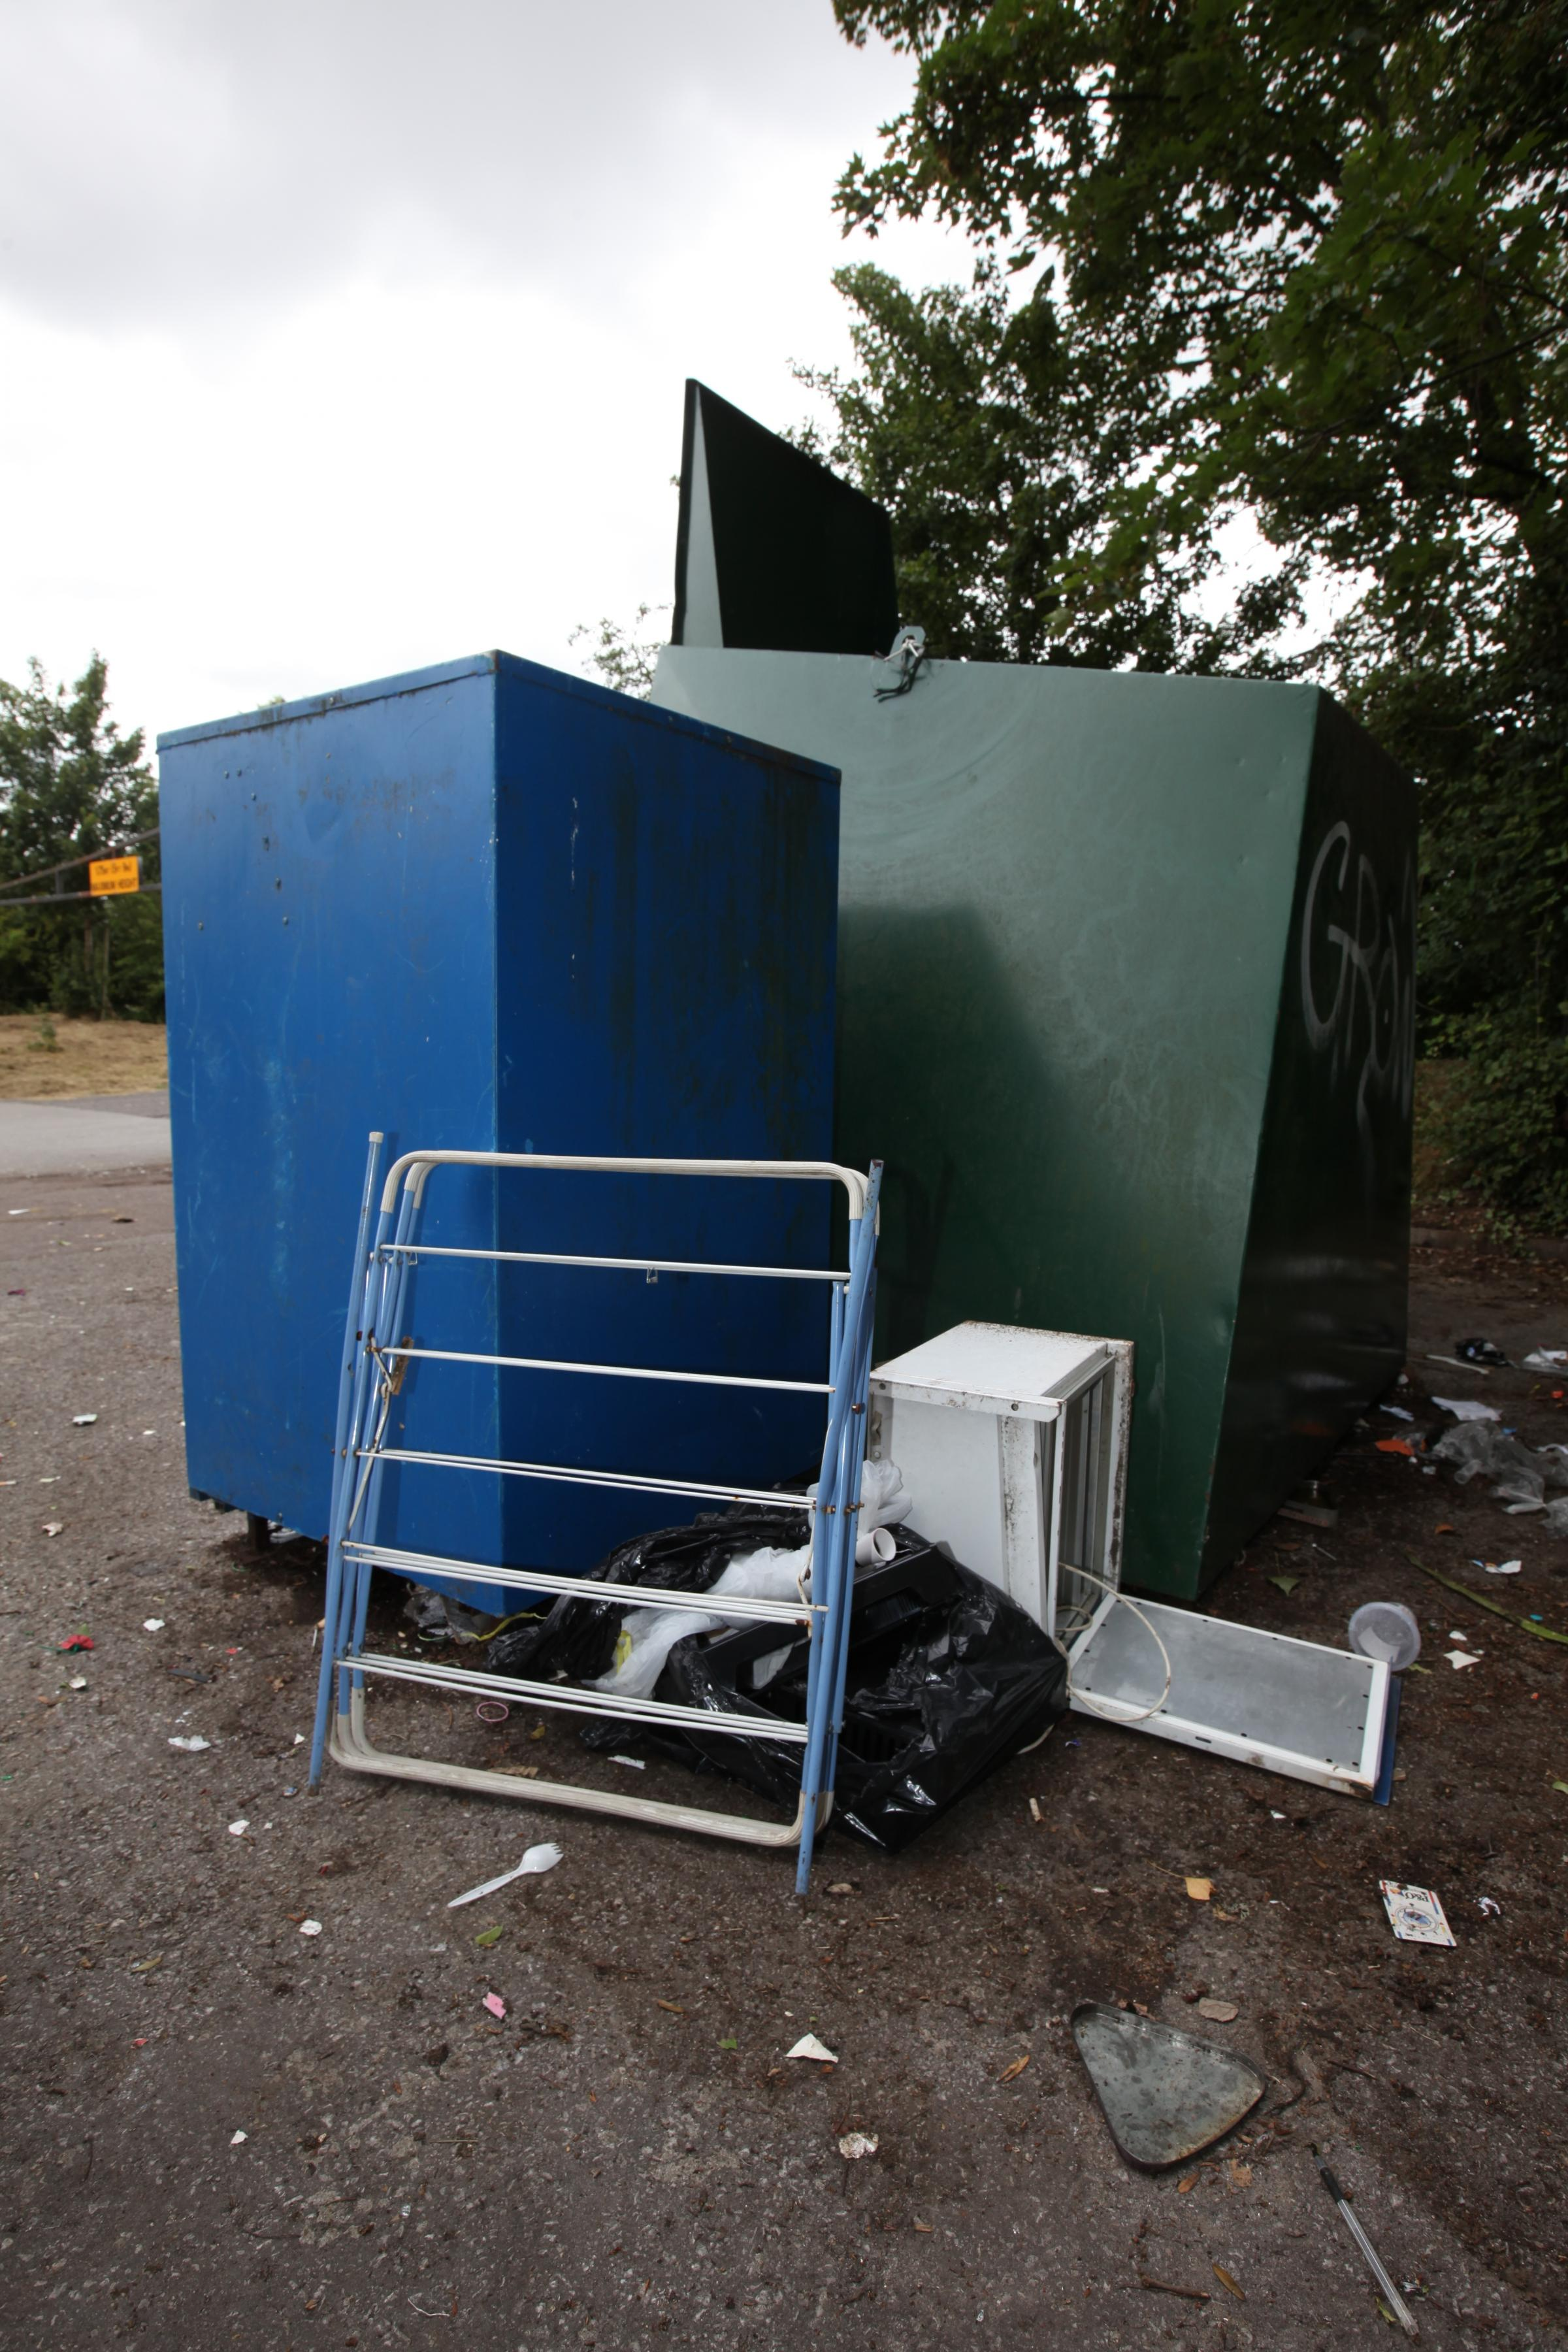 Rachel Adams 28.7.15 Fly tipping at the car park on Woodmill Lane, Soton. pictured: dumped rubbish.